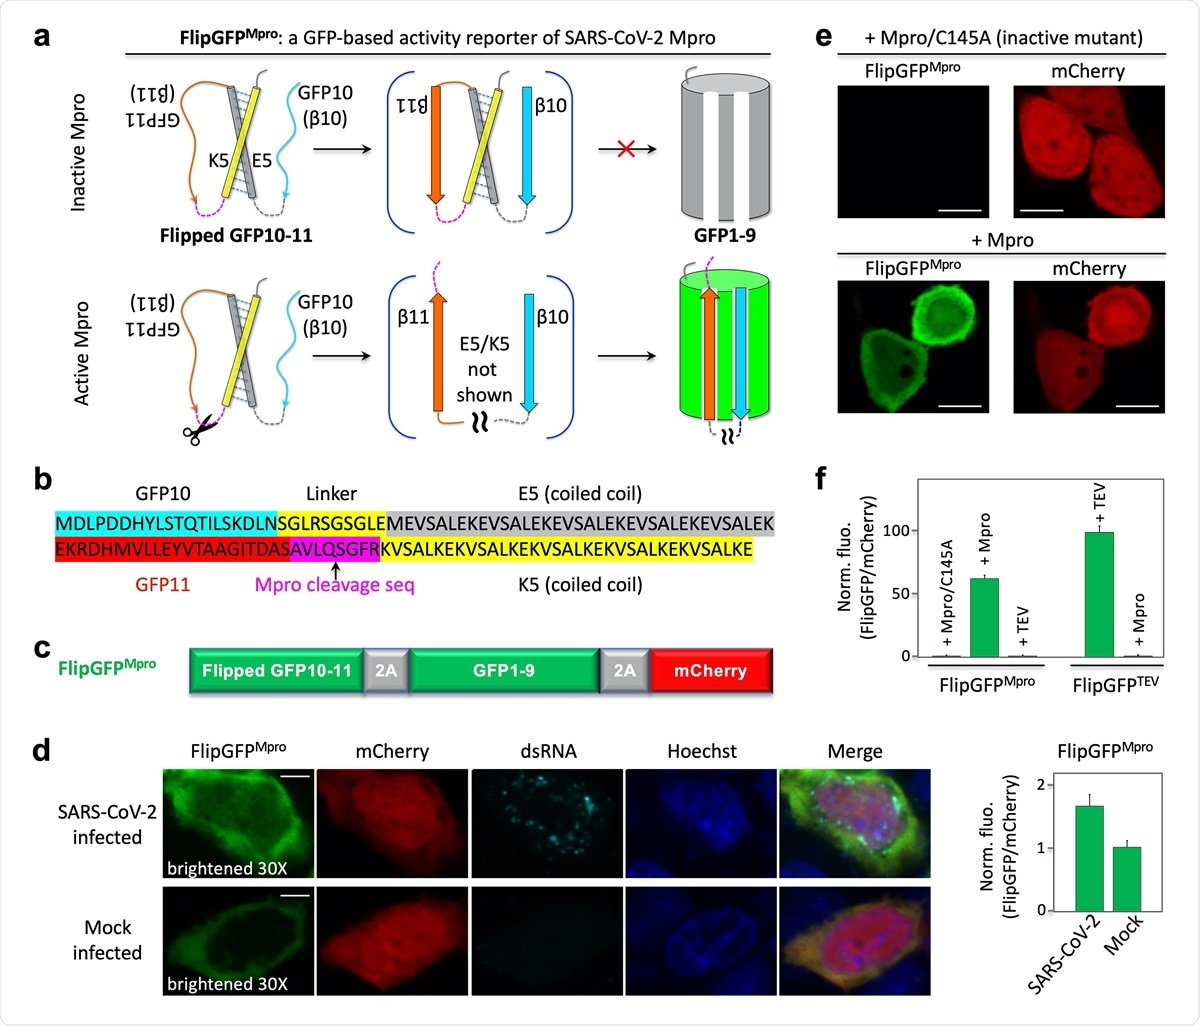 Design and demonstration of a GFP-based activity reporter of SARS-CoV2 main protease Mpro. (a) Schematic of the reporter. (b) Sequence of the flipped GFP10-11. (c) Construct of the reporter FlipGFPMpro. (d) Fluorescence images (left) and quantitative analysis (right) of SARS-CoV-2 or mock-infected HEK293T cells that co-expressed hACE2. The images in the FlipGFP channel were brightened 30-fold compared to those in (e). (e) Fluorescence images of HEK293T cells expressing FlipGFPMpro and mCherry, together with the inactive Mpro mutant C145A (upper panels) or wild type Mpro (lower panels). (f) Normalized FlipGFP fluorescence by mCherry. The ratio of FlipGFP/mCherry for the Mpro/C145A is normalized to 1. Data are mean ± SD (n = 5). FlipGFPTEV is a TEV activity reporter containing TEV cleavage sequence in FlipGFP. Scale bar: 5 μm (d); 10 μm (f).